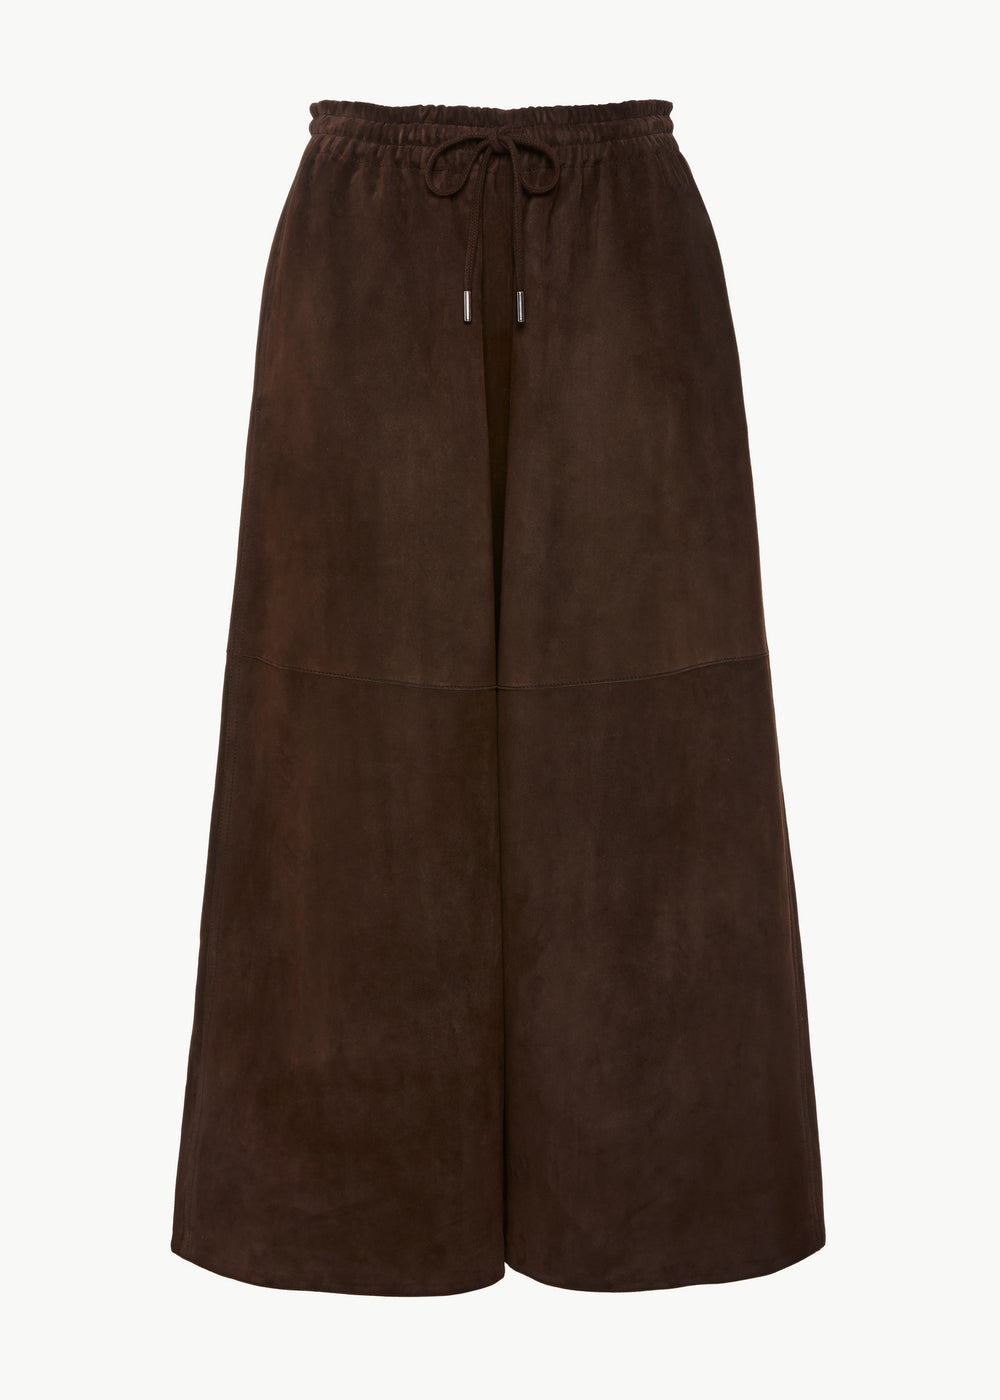 Drawstring Pant in Suede - Brown - CO